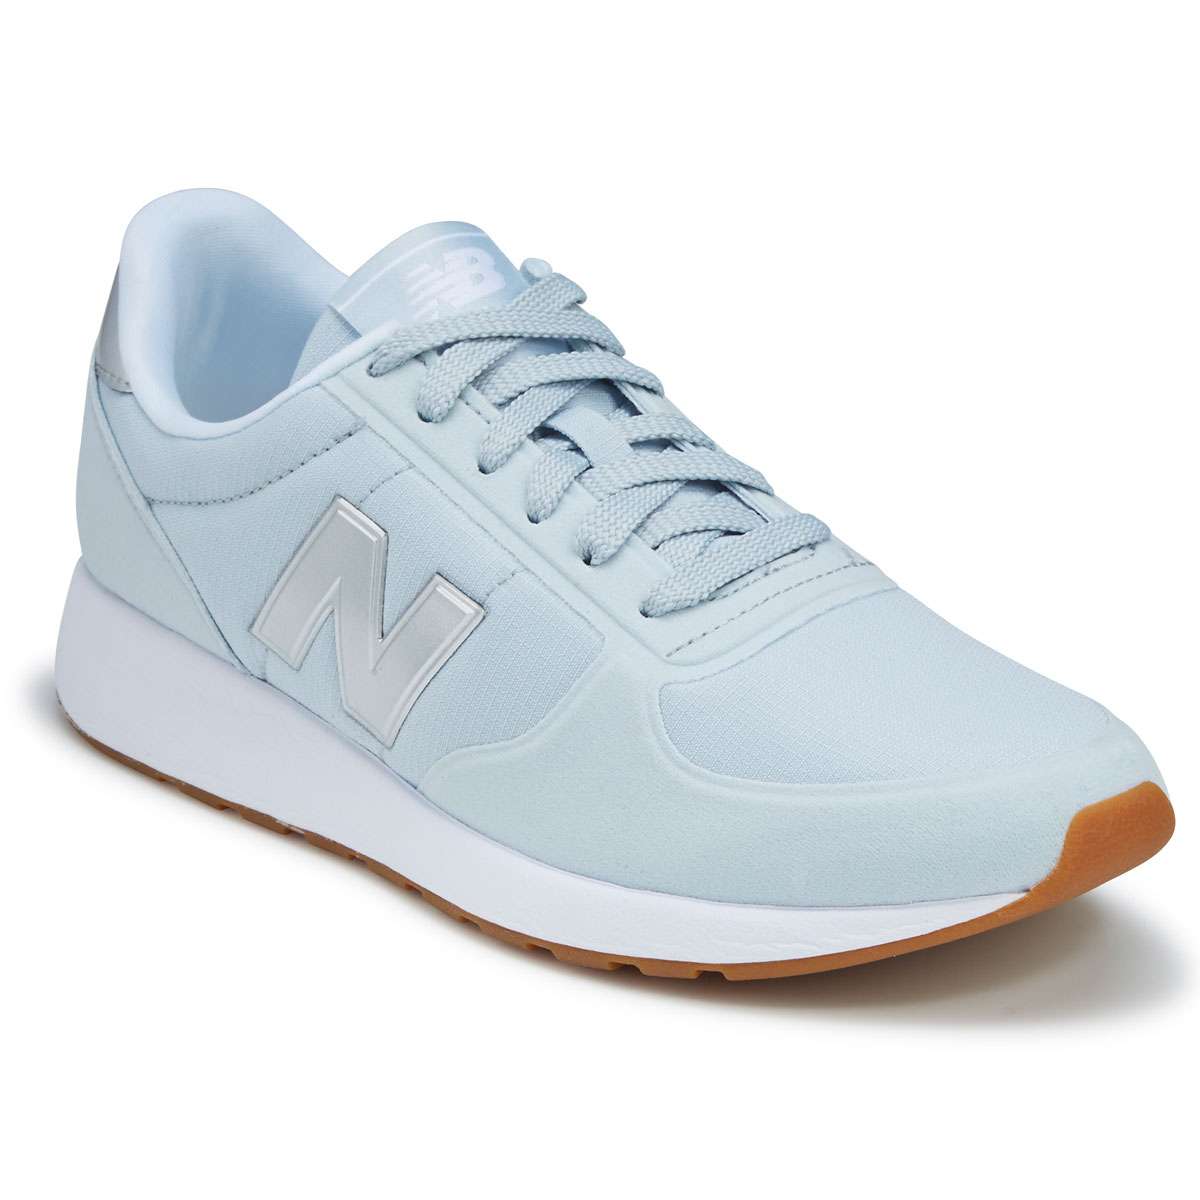 New Balance Women's 215V1 Sneakers - Blue, 7.5